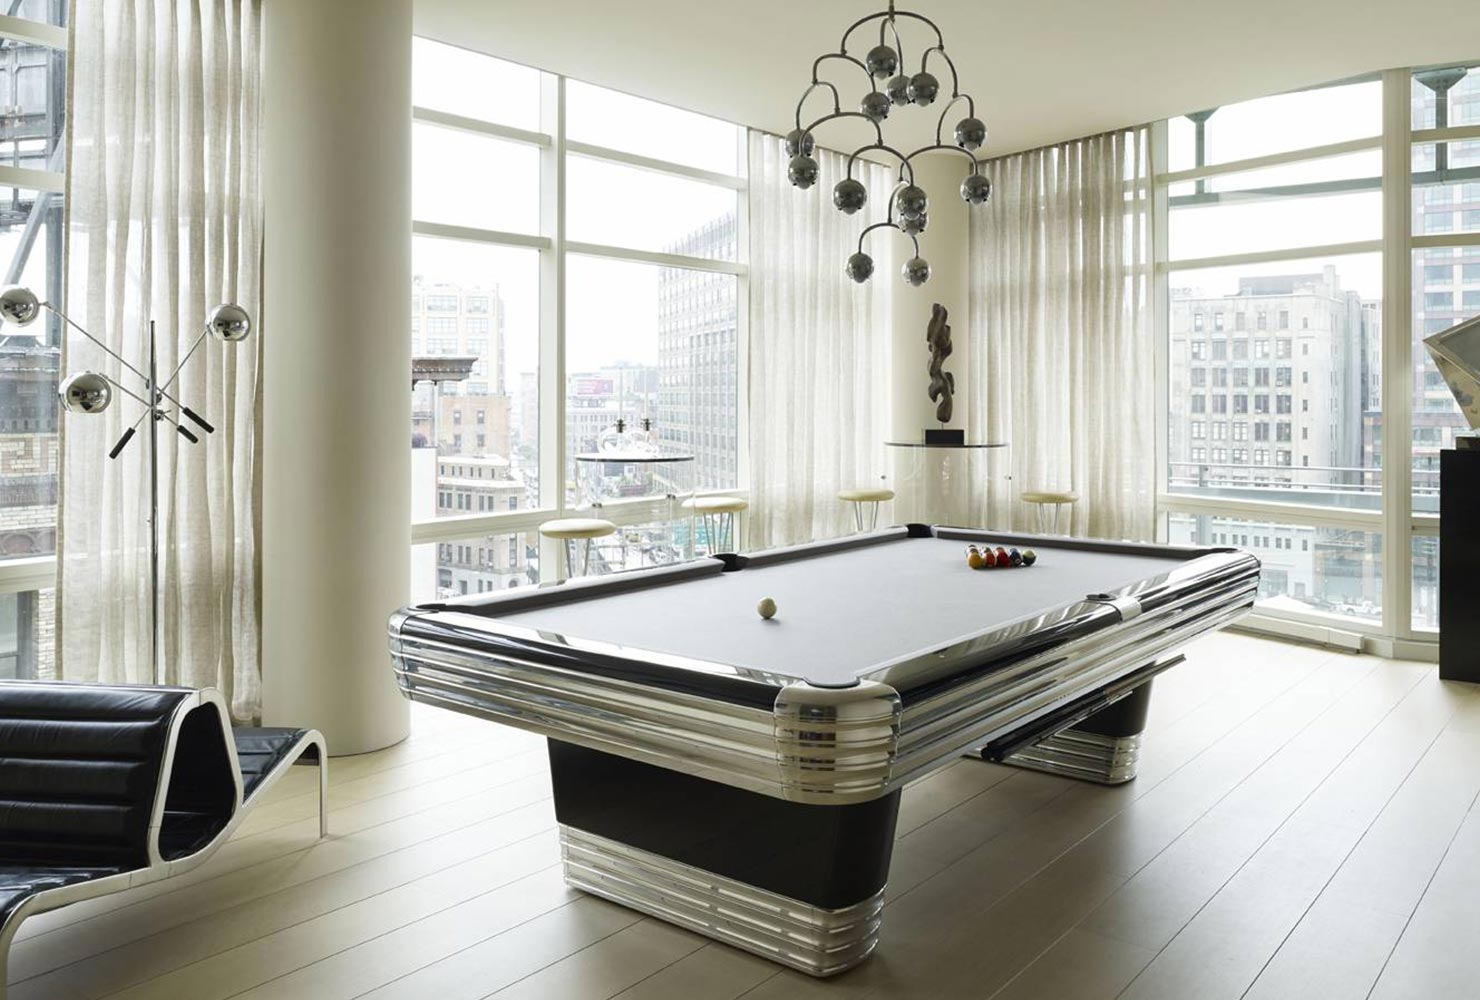 Well, things have changed o. 38 Best Game Room Ideas For Any Entertaining | Shutterfly